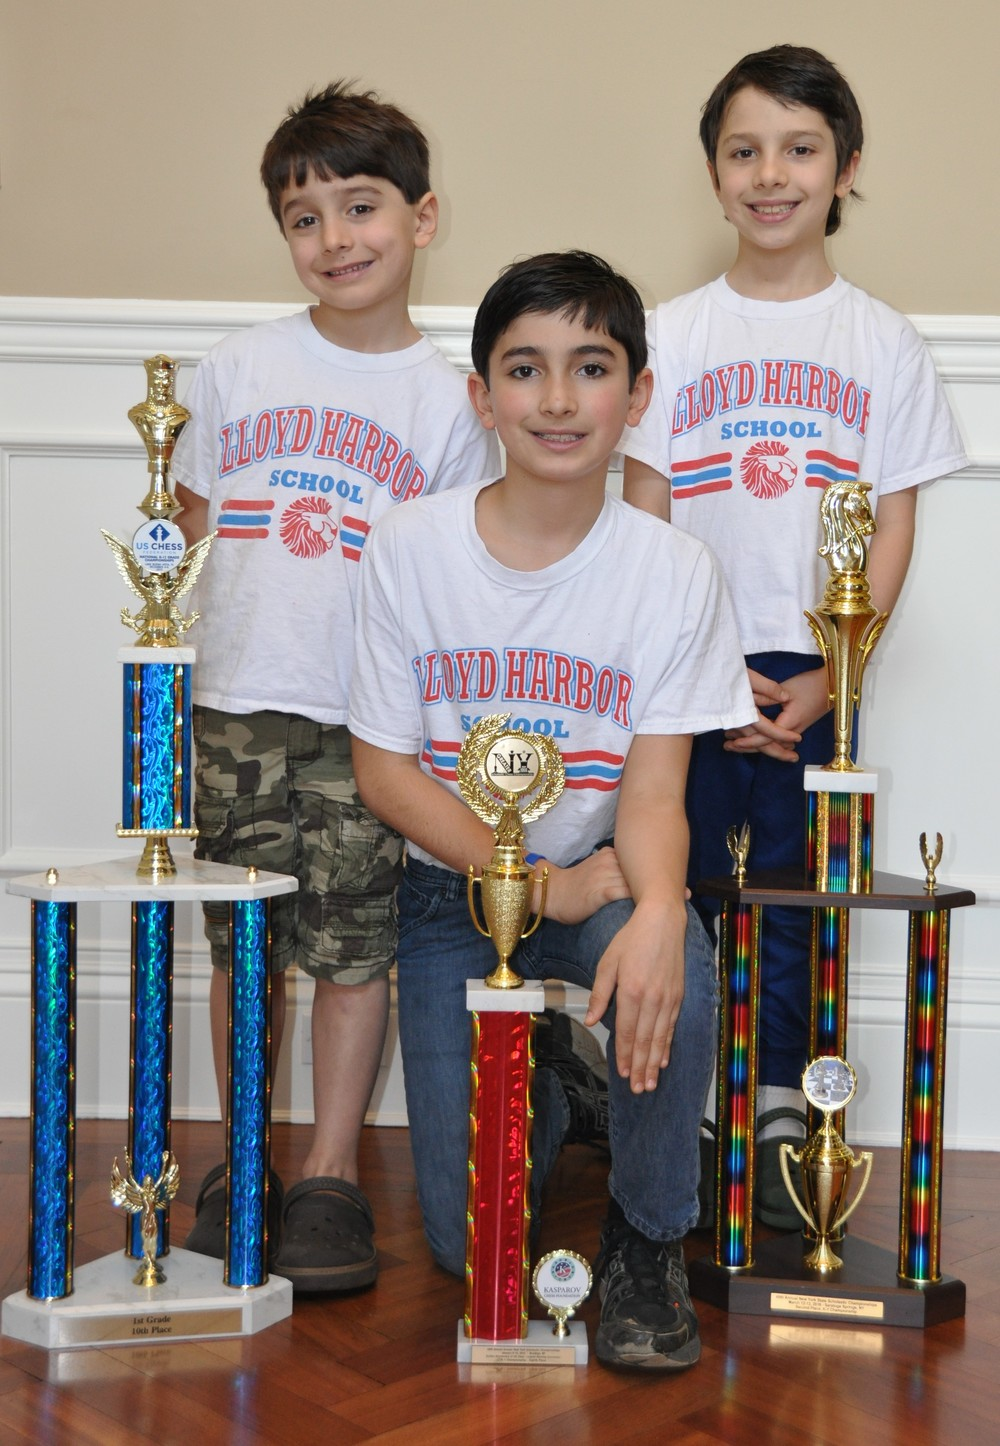 Lloyd Harbor 6-year-old Sebastian Prestia, left, is the top-ranked chess player in the country in his age bracket, according to the United States Chess Federation. Sebastian is pictured with older brothers Paris Prestia, the fourth-ranked 10-year-old chess player in New York, and Frankie Prestia, the third-ranked 8-year-old chess player in the state.